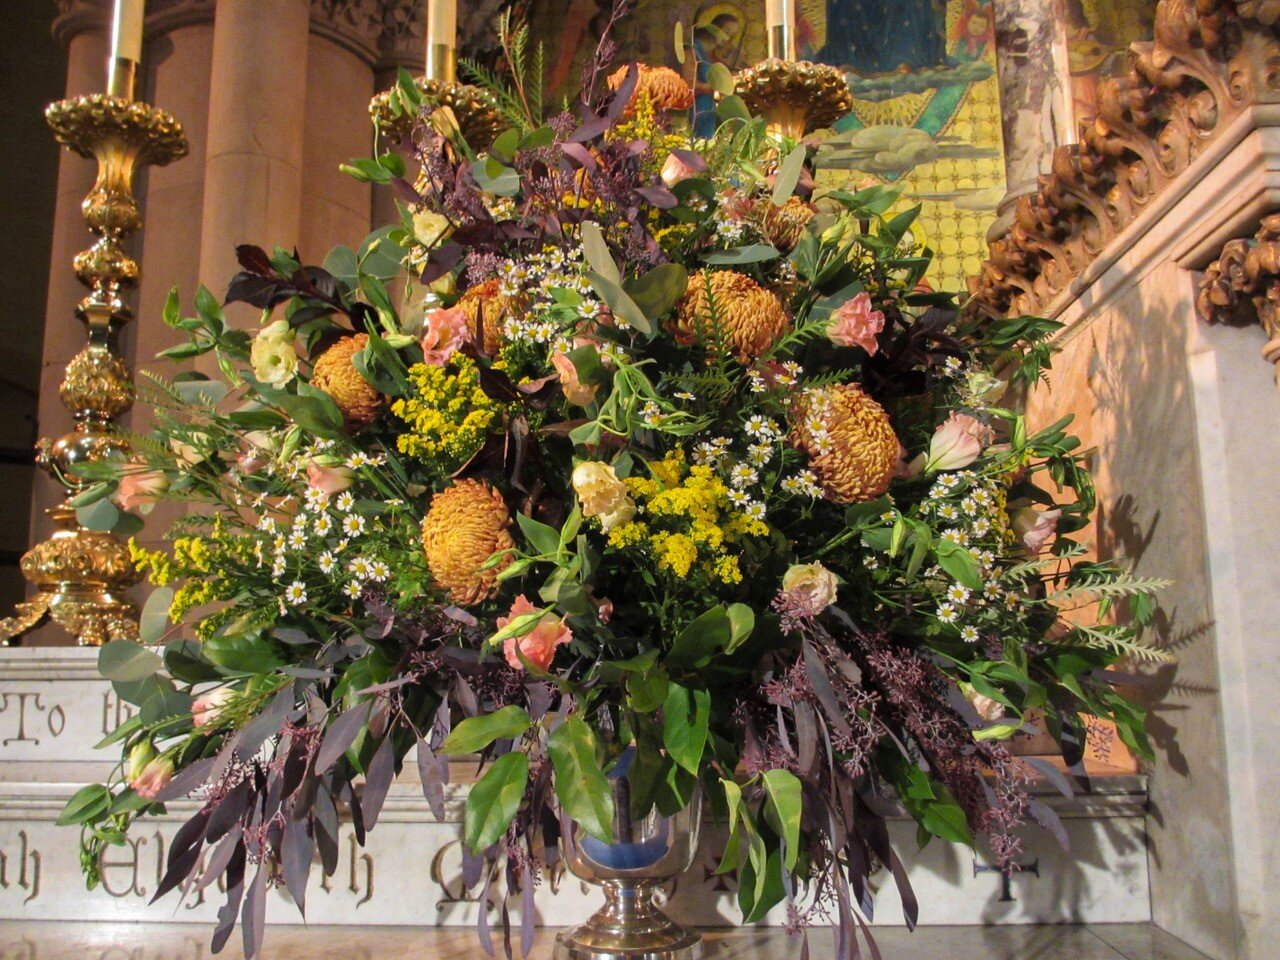 The flowers were given by Michael Reid to the glory of God and in loving memory of his late partner Morgan Holman. The flowers were arranged by Br. Thomas Steffensen SSF, a member of the Flower Guild.   Photo:   MaryJane Boland